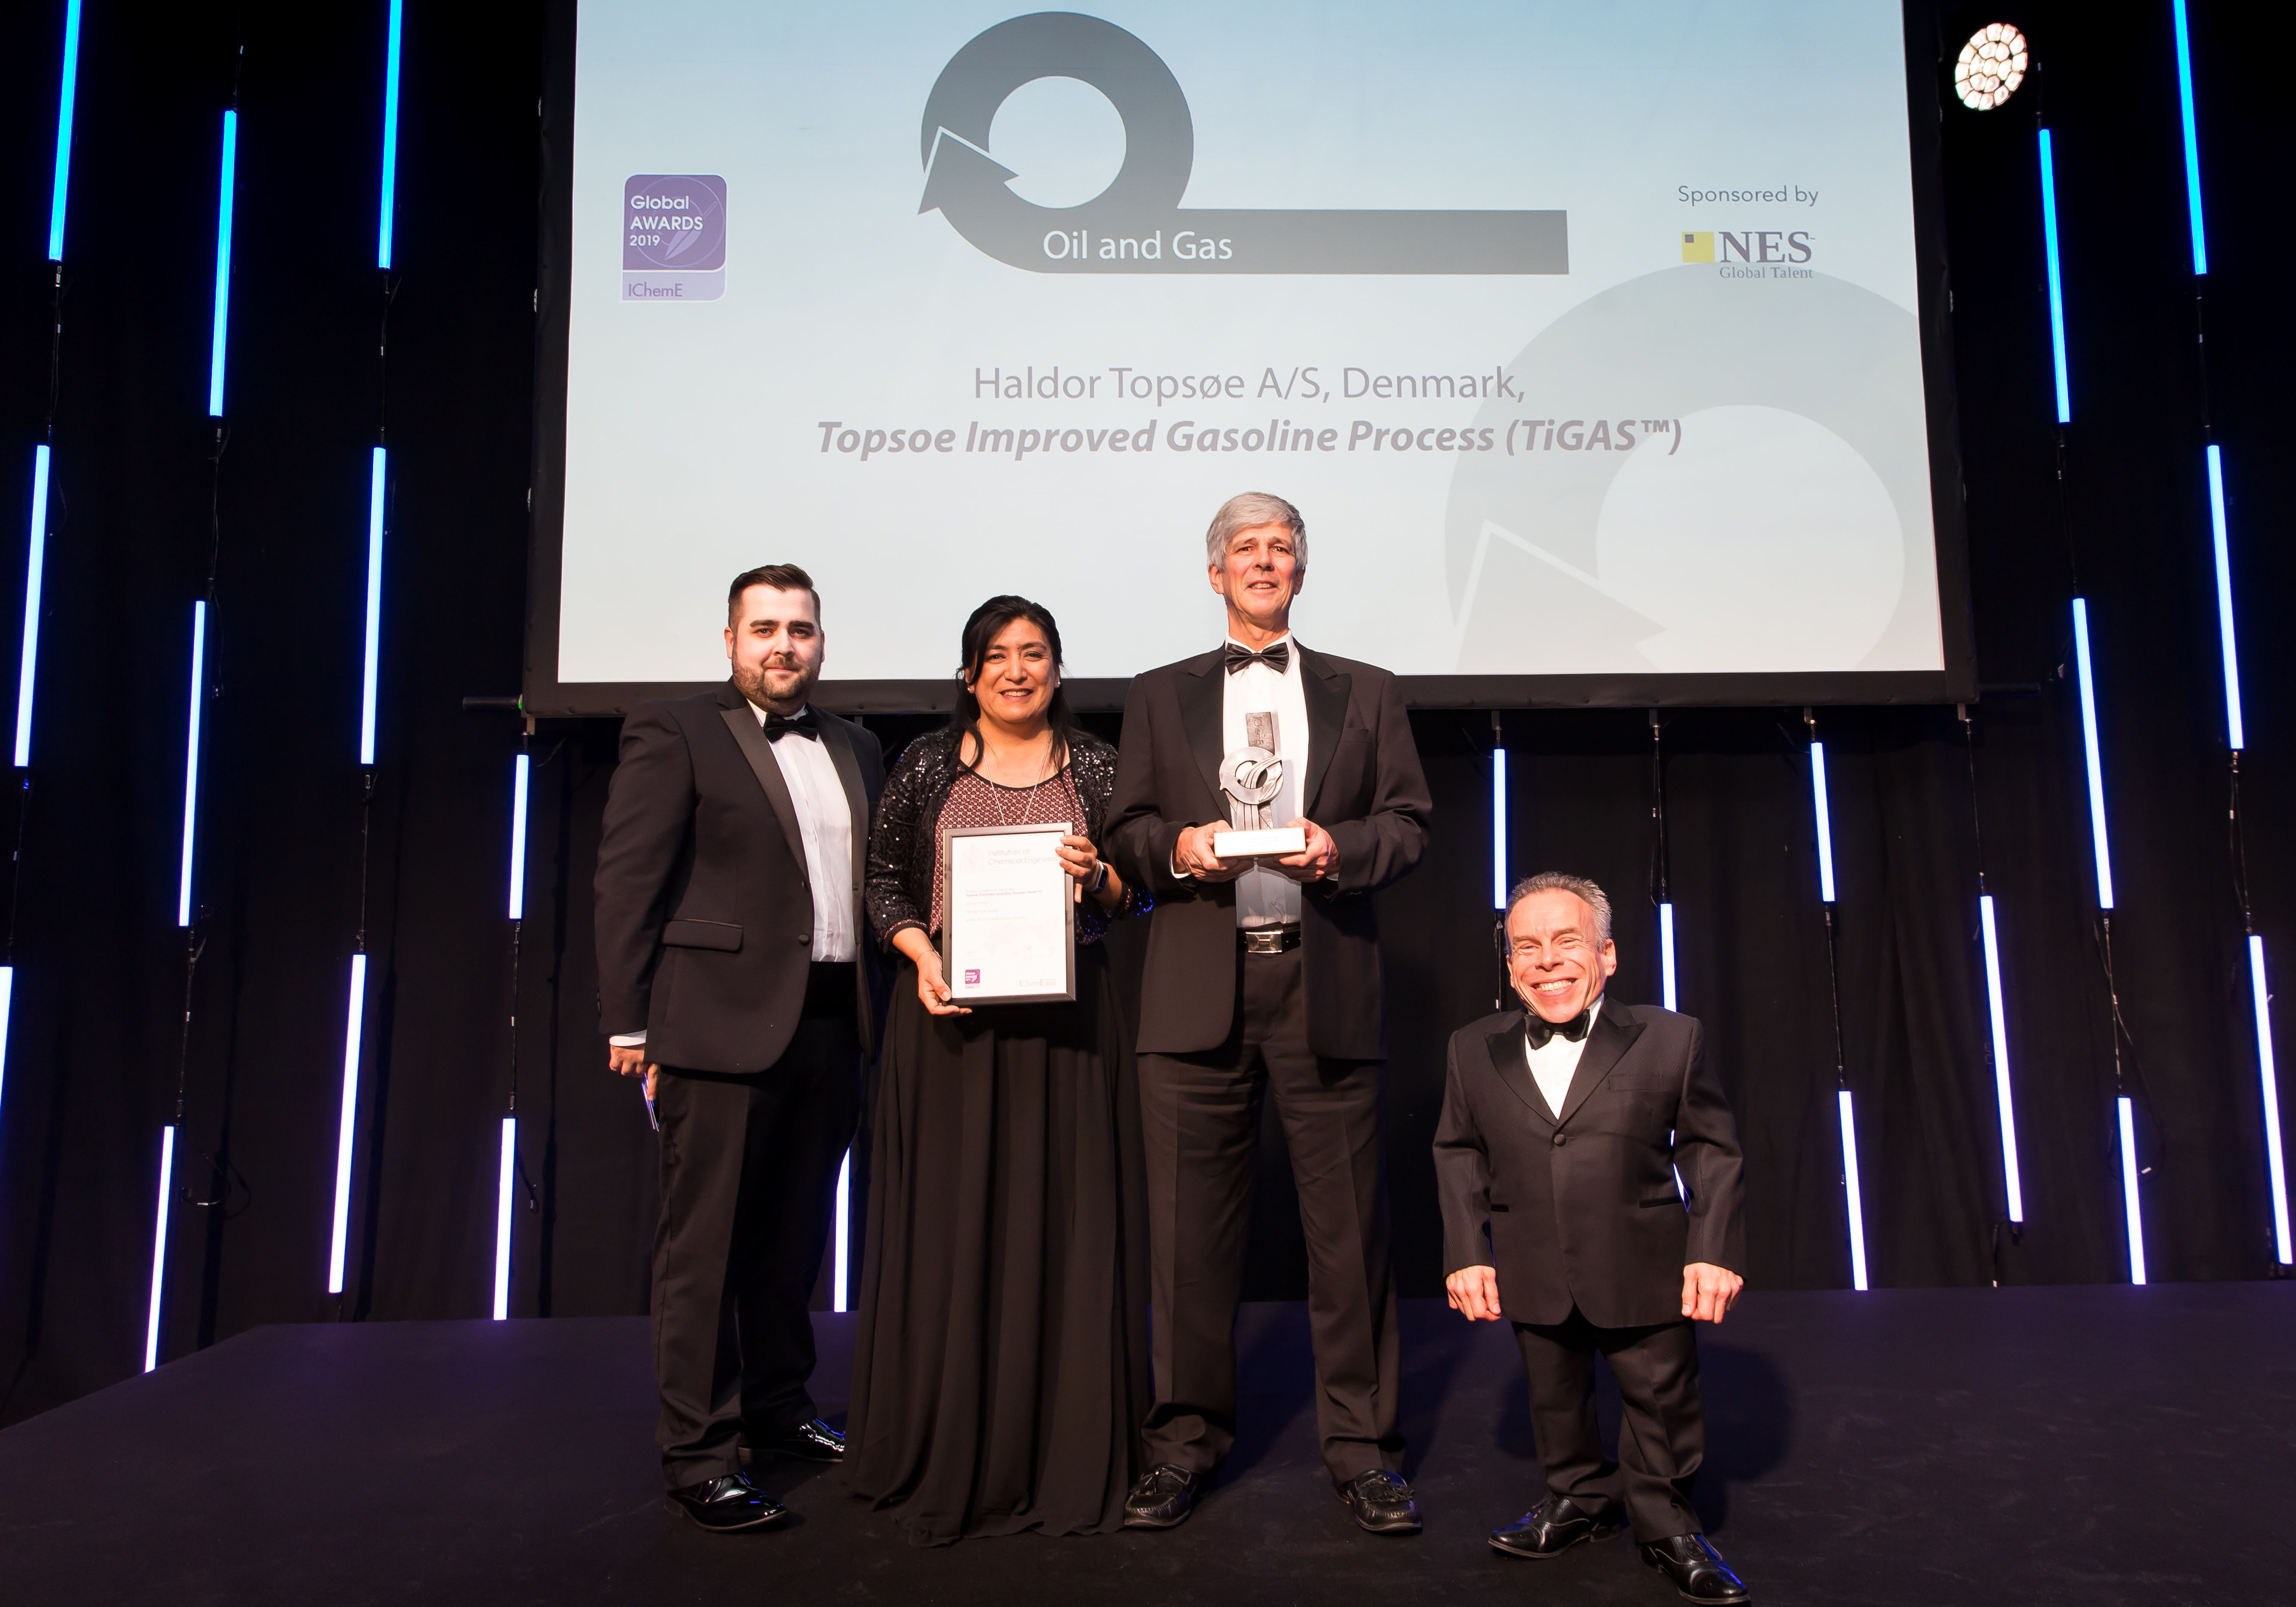 Angelica Hidalgo Vivas and Finn Joensen (center), receive the IChemE Global Award Oil and Gas 2019 for the TIGAS™ technology on behalf of Topsoe.